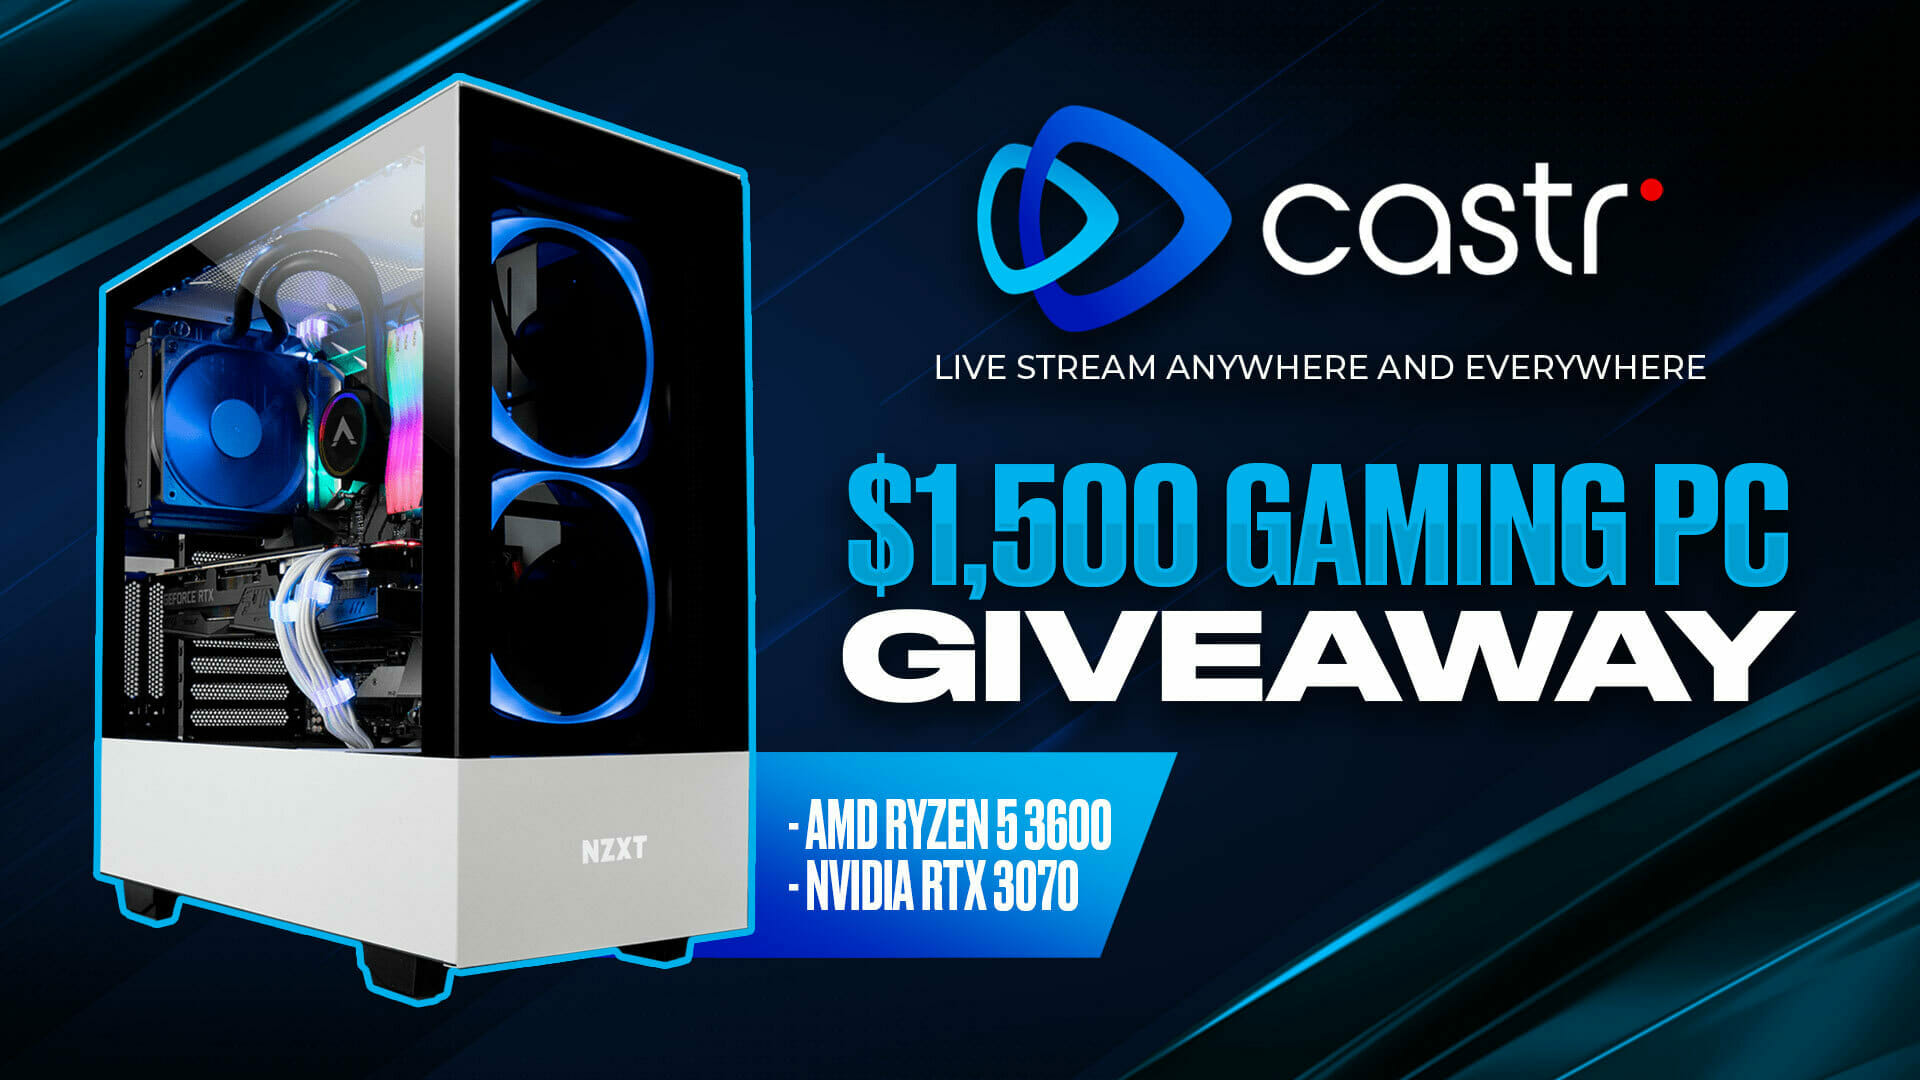 Castr 2021 New Year Giveaway: $1,500 Gaming PC. Enter Now! - Castr's Blog